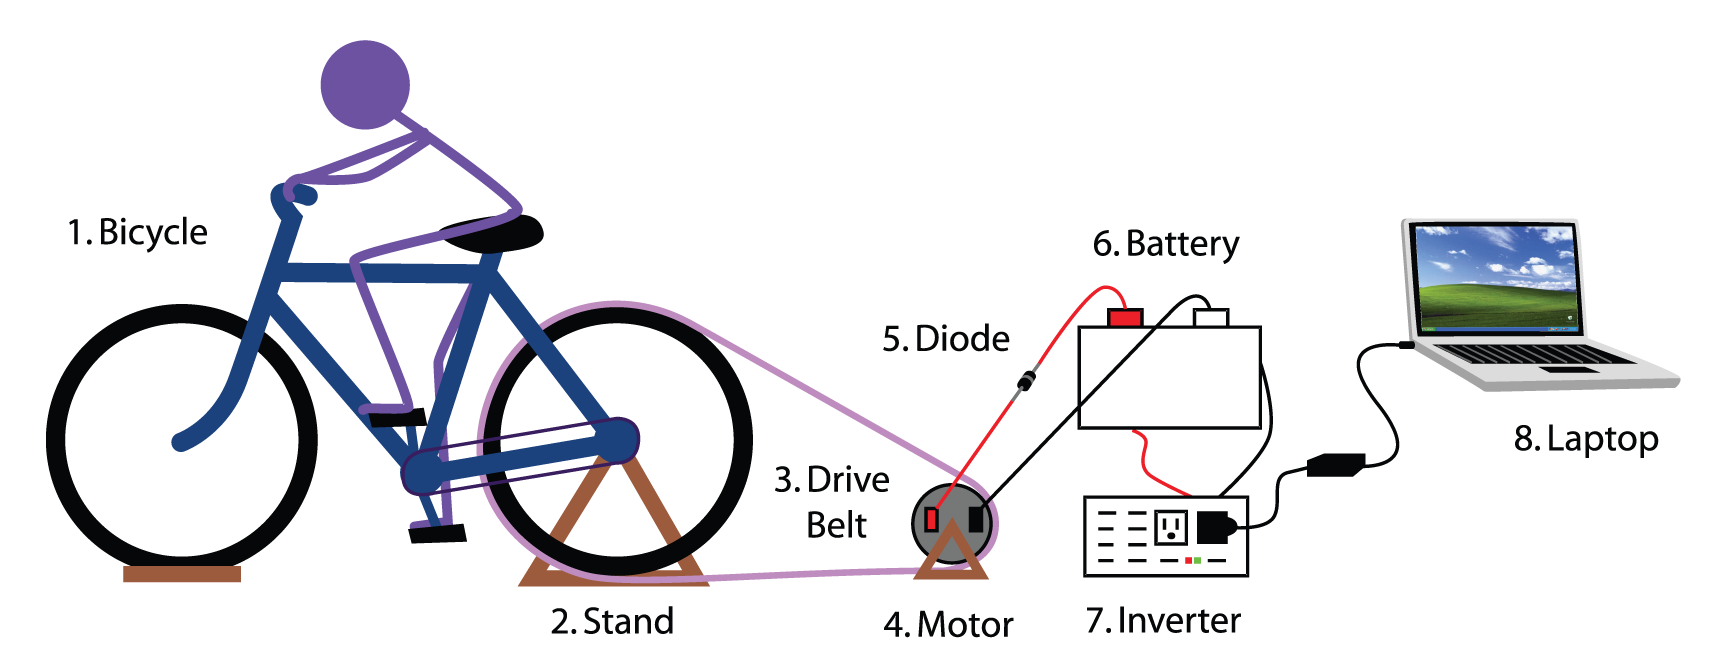 How to Build a Bicycle Generator : 9 Steps - Instructables